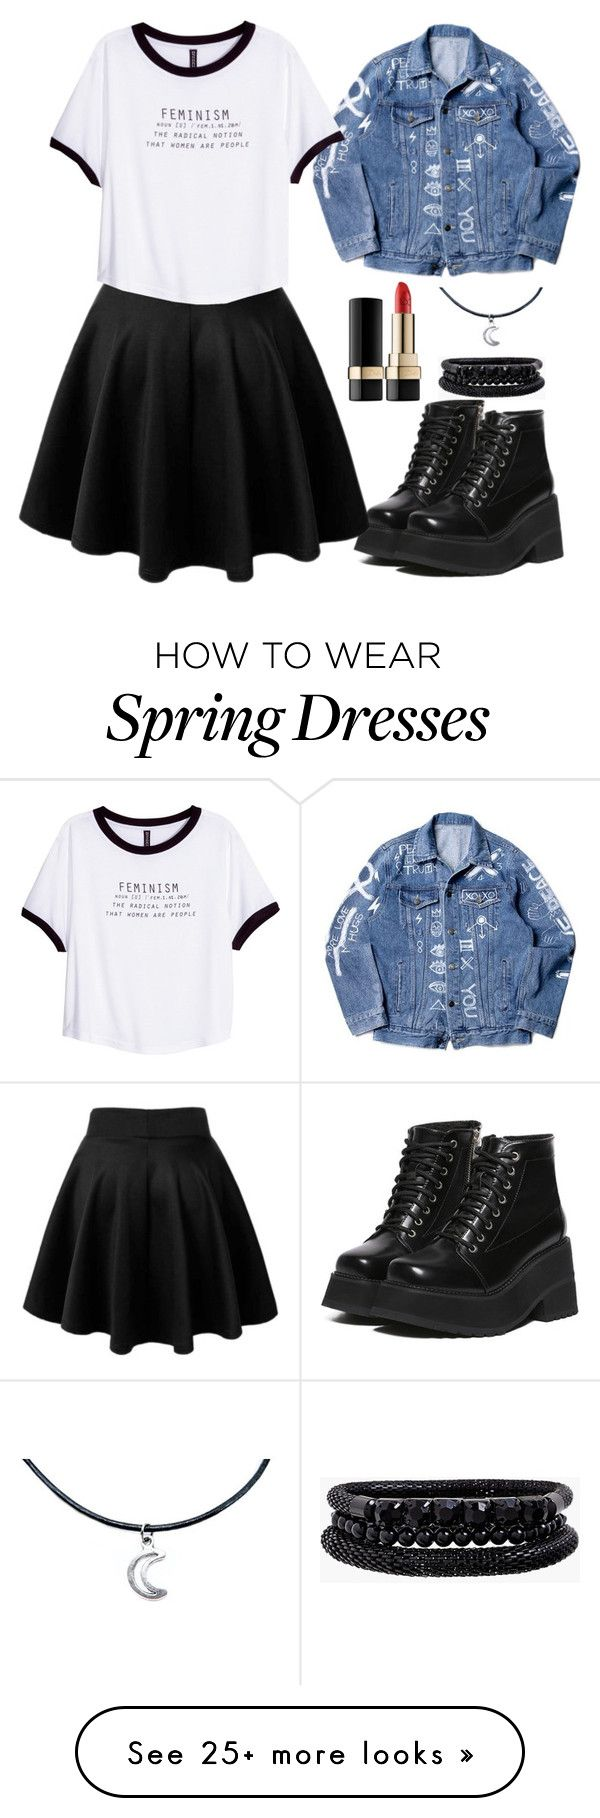 """My world is unaffected, there is an exit here I say it is and then it's true."" by siennabrown on Polyvore featuring Dolce&Gabbana, H&M, Spring Street, Punk, rock, grunge and alternative"